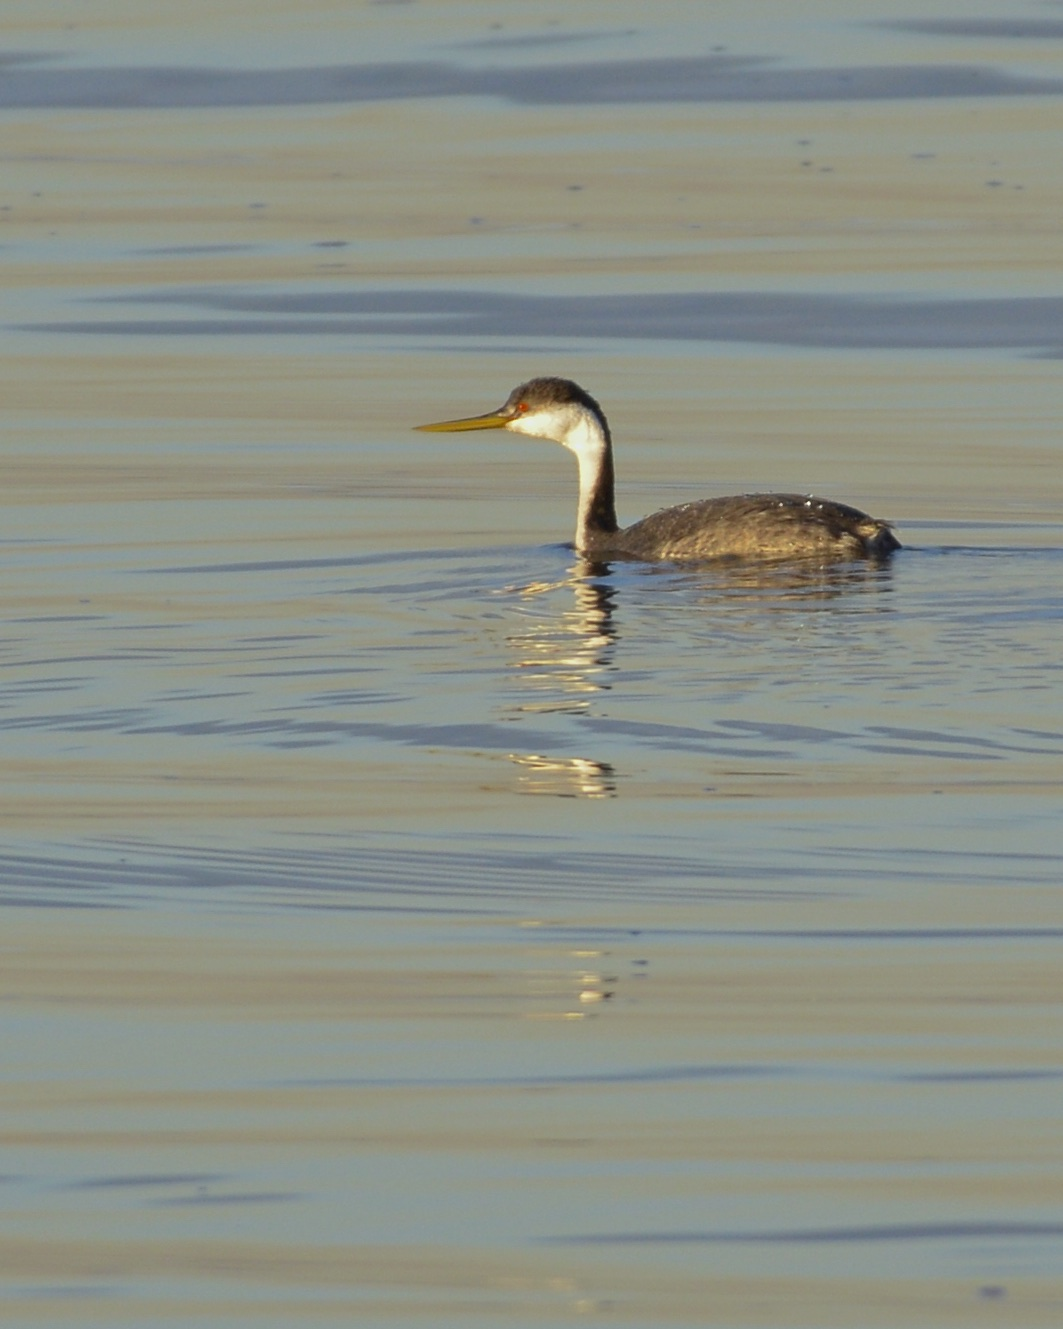 ~WESTERN GREBE at Piermont Pier, 1/716. Photo by Maria Loukeris.~